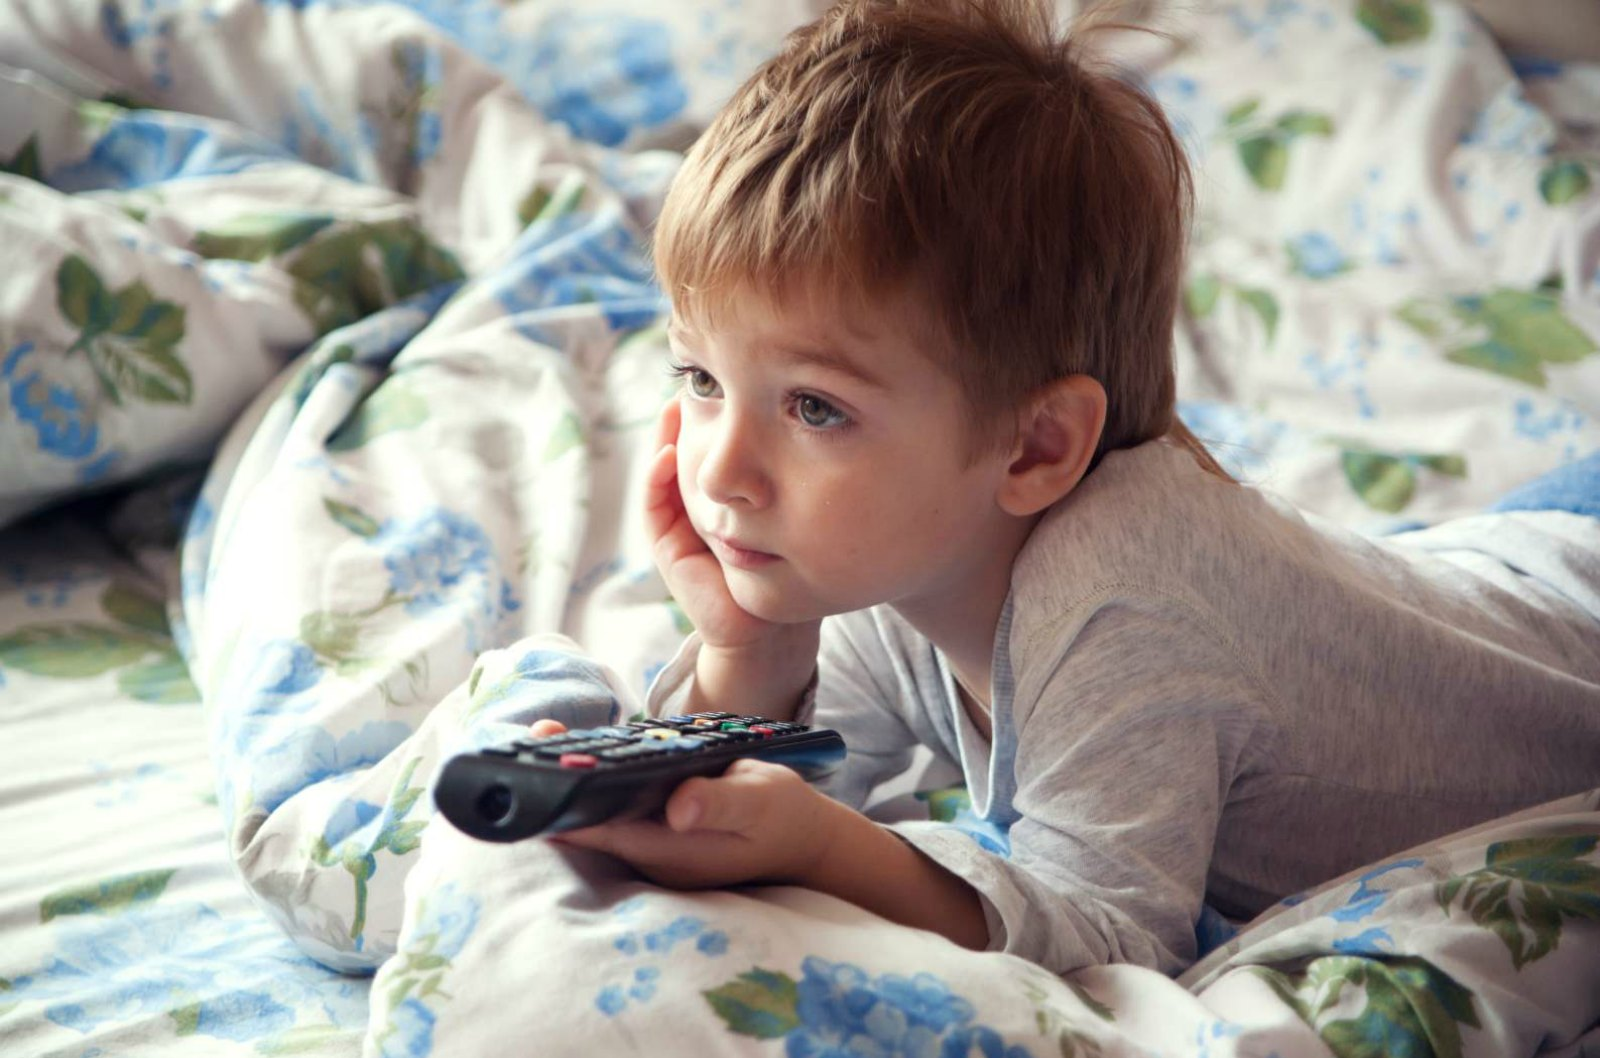 V-Chip Keeps Television Violence From Reaching Children